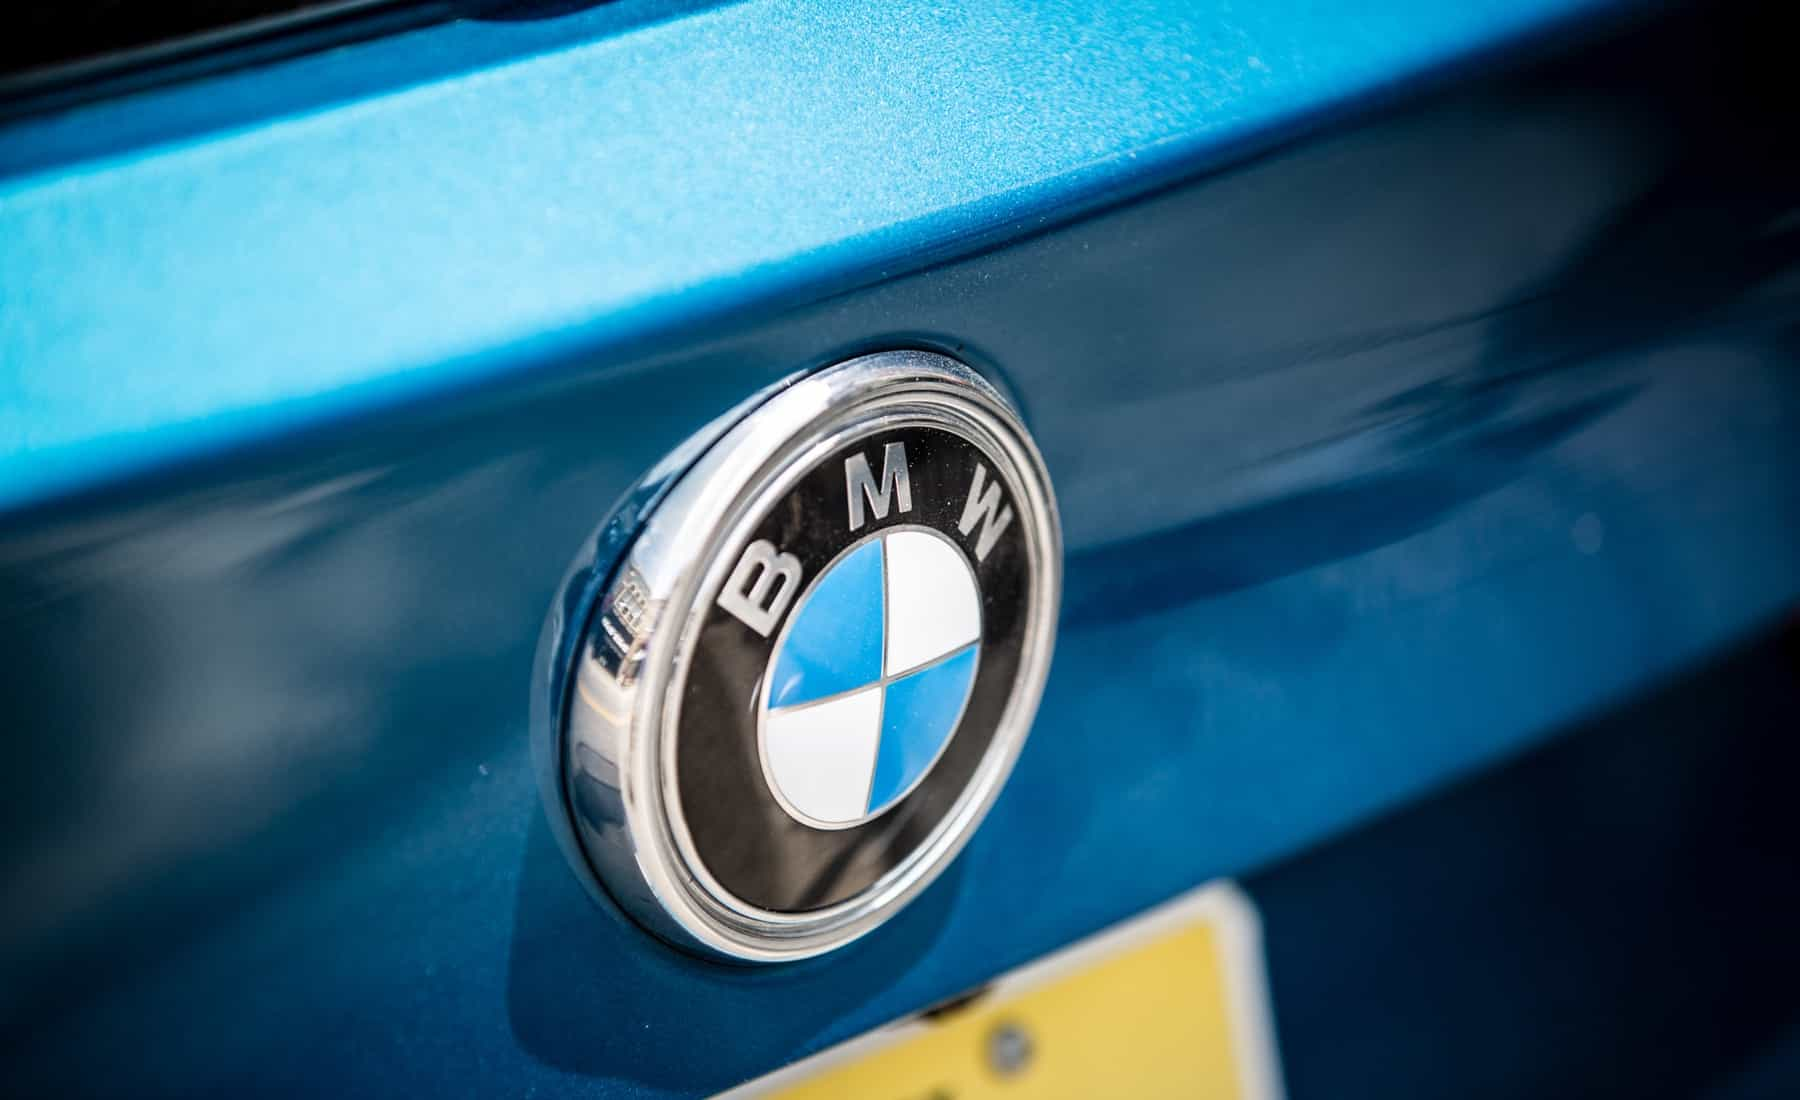 2017 BMW X5 M Exterior View Rear BMW Badge (Photo 25 of 35)